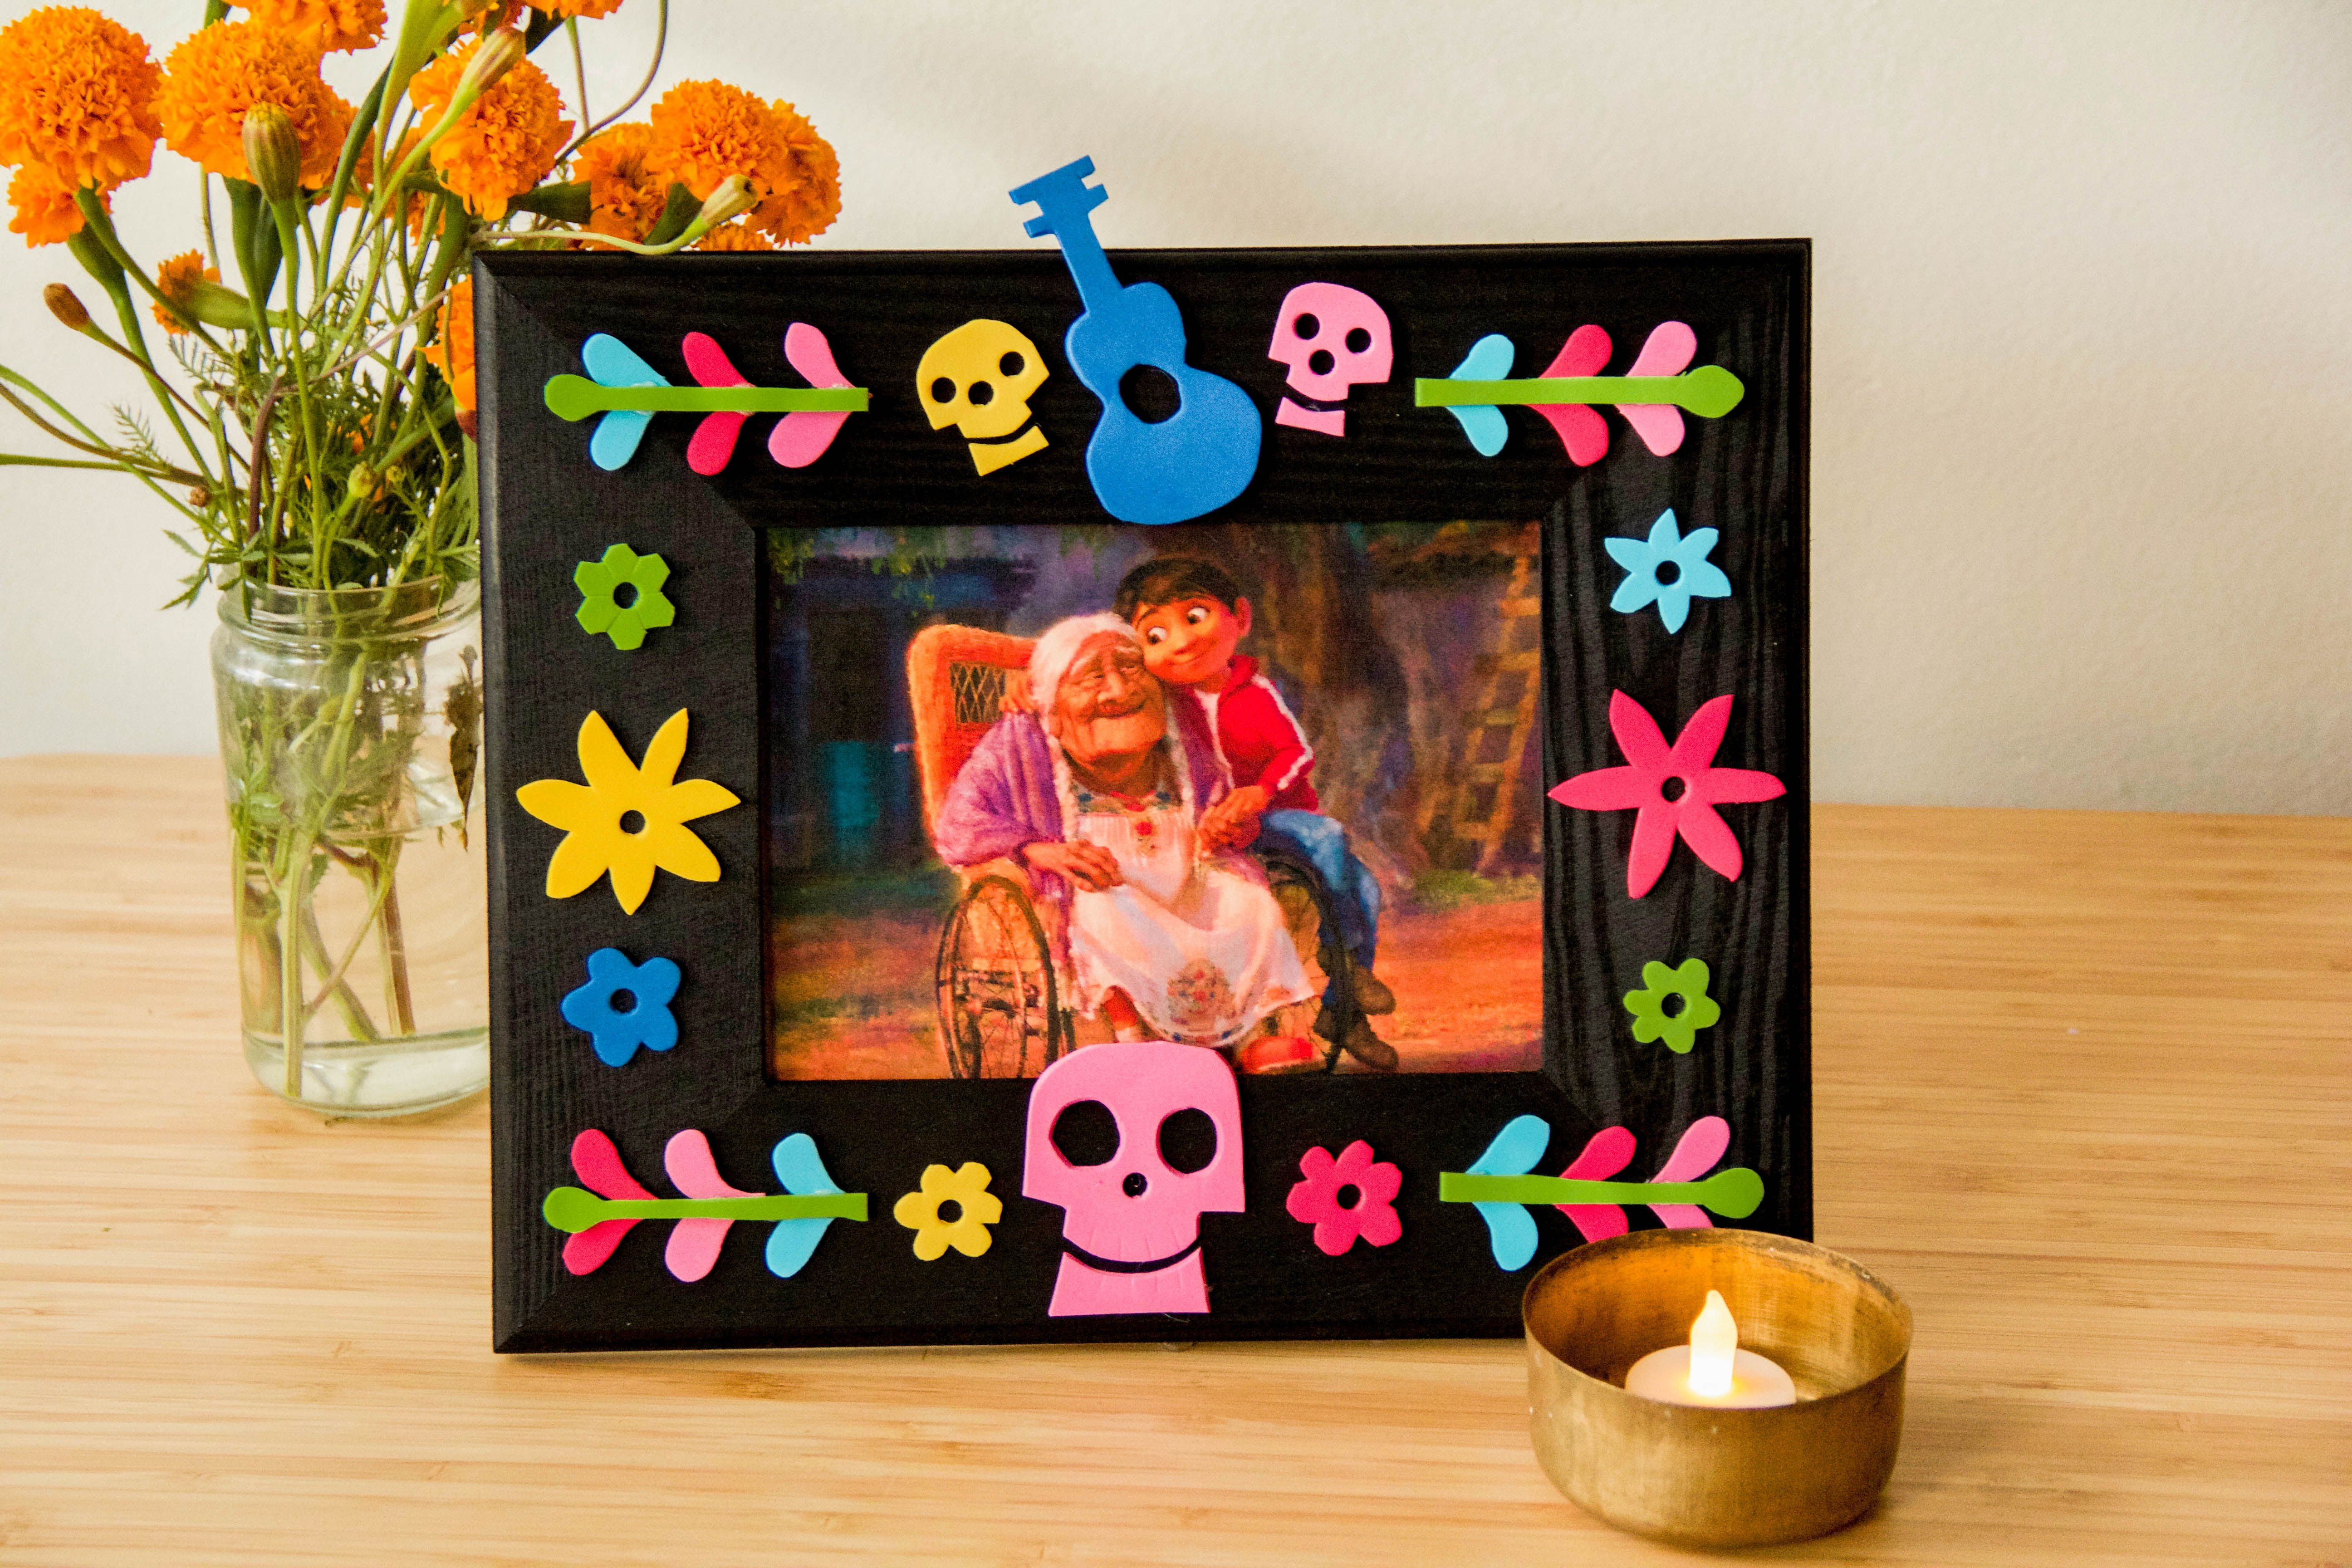 Show your love for 39 coco 39 and your family with this diy - Marcos de papel para fotos ...